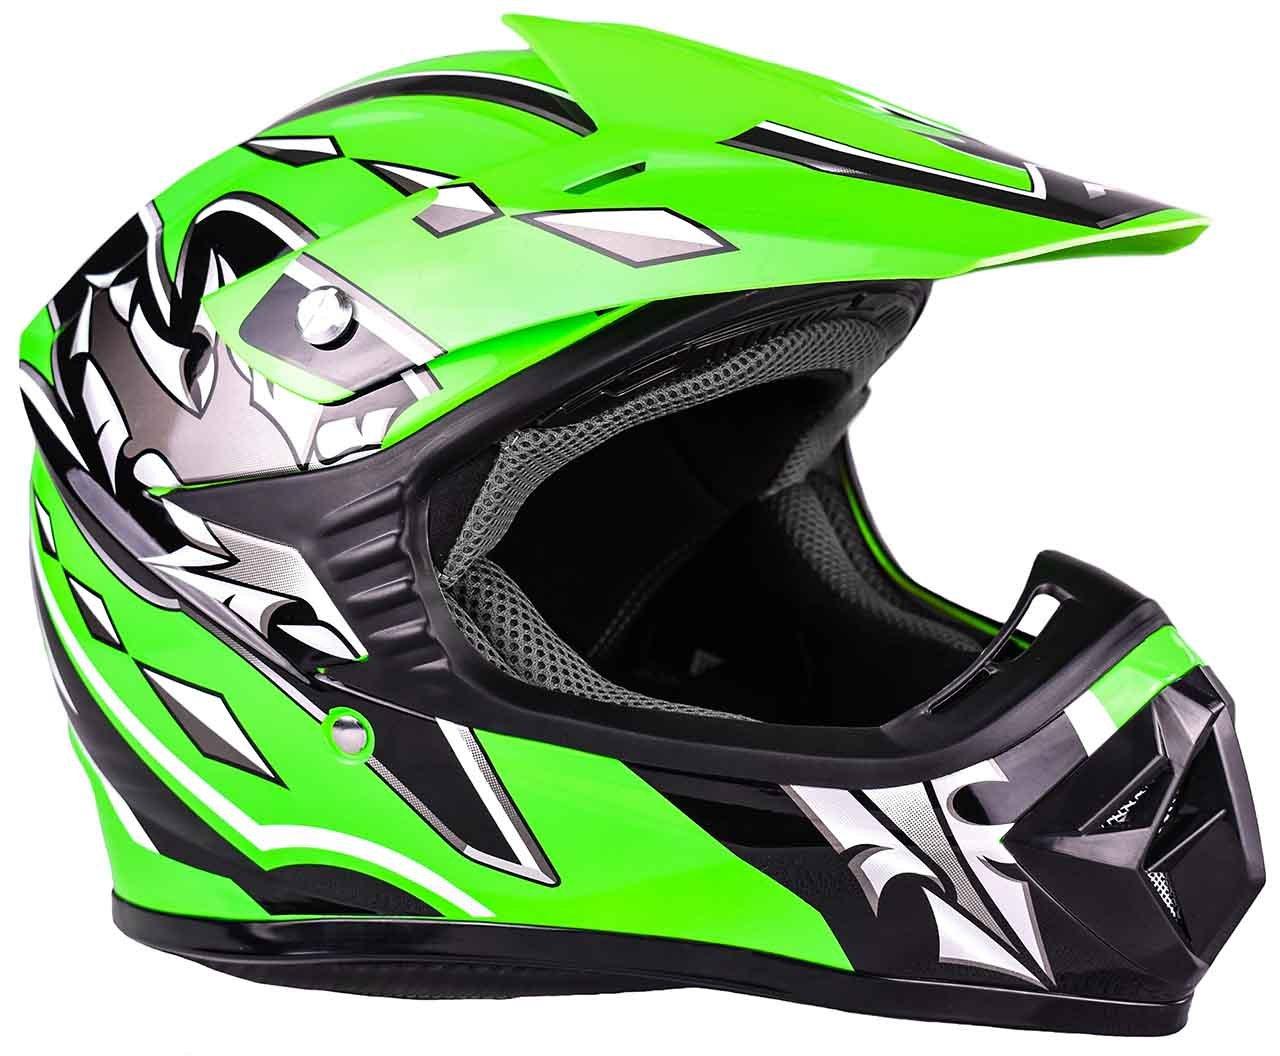 Amazon.com: Youth Kids Offroad Gear Combo Helmet Gloves Goggles DOT Motocross ATV Dirt Bike MX Motorcycle Green (Small): Automotive